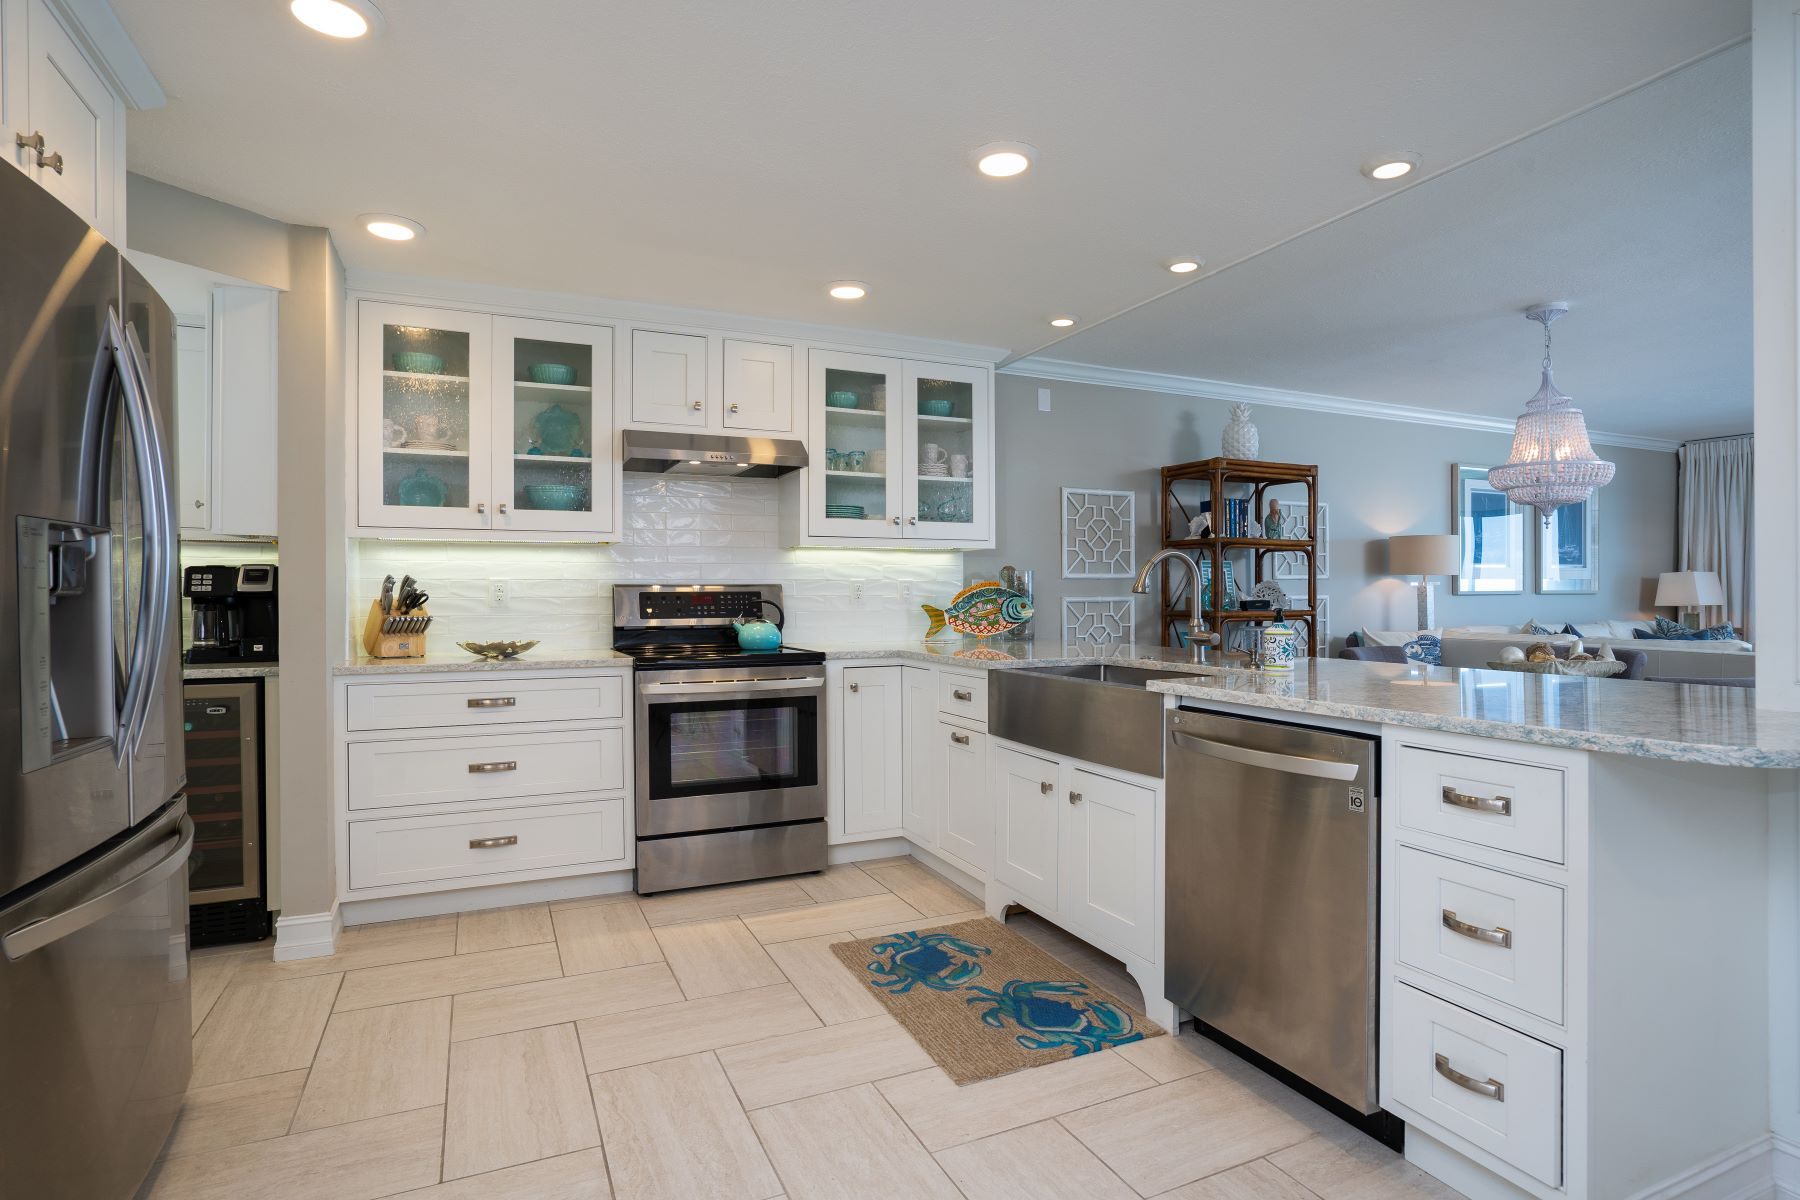 Additional photo for property listing at Impressive Direct Oceanfront Condo With Tasteful Finishes in Sterling House 6307 S Highway A1A Unit 242 Melbourne Beach, Florida 32951 United States